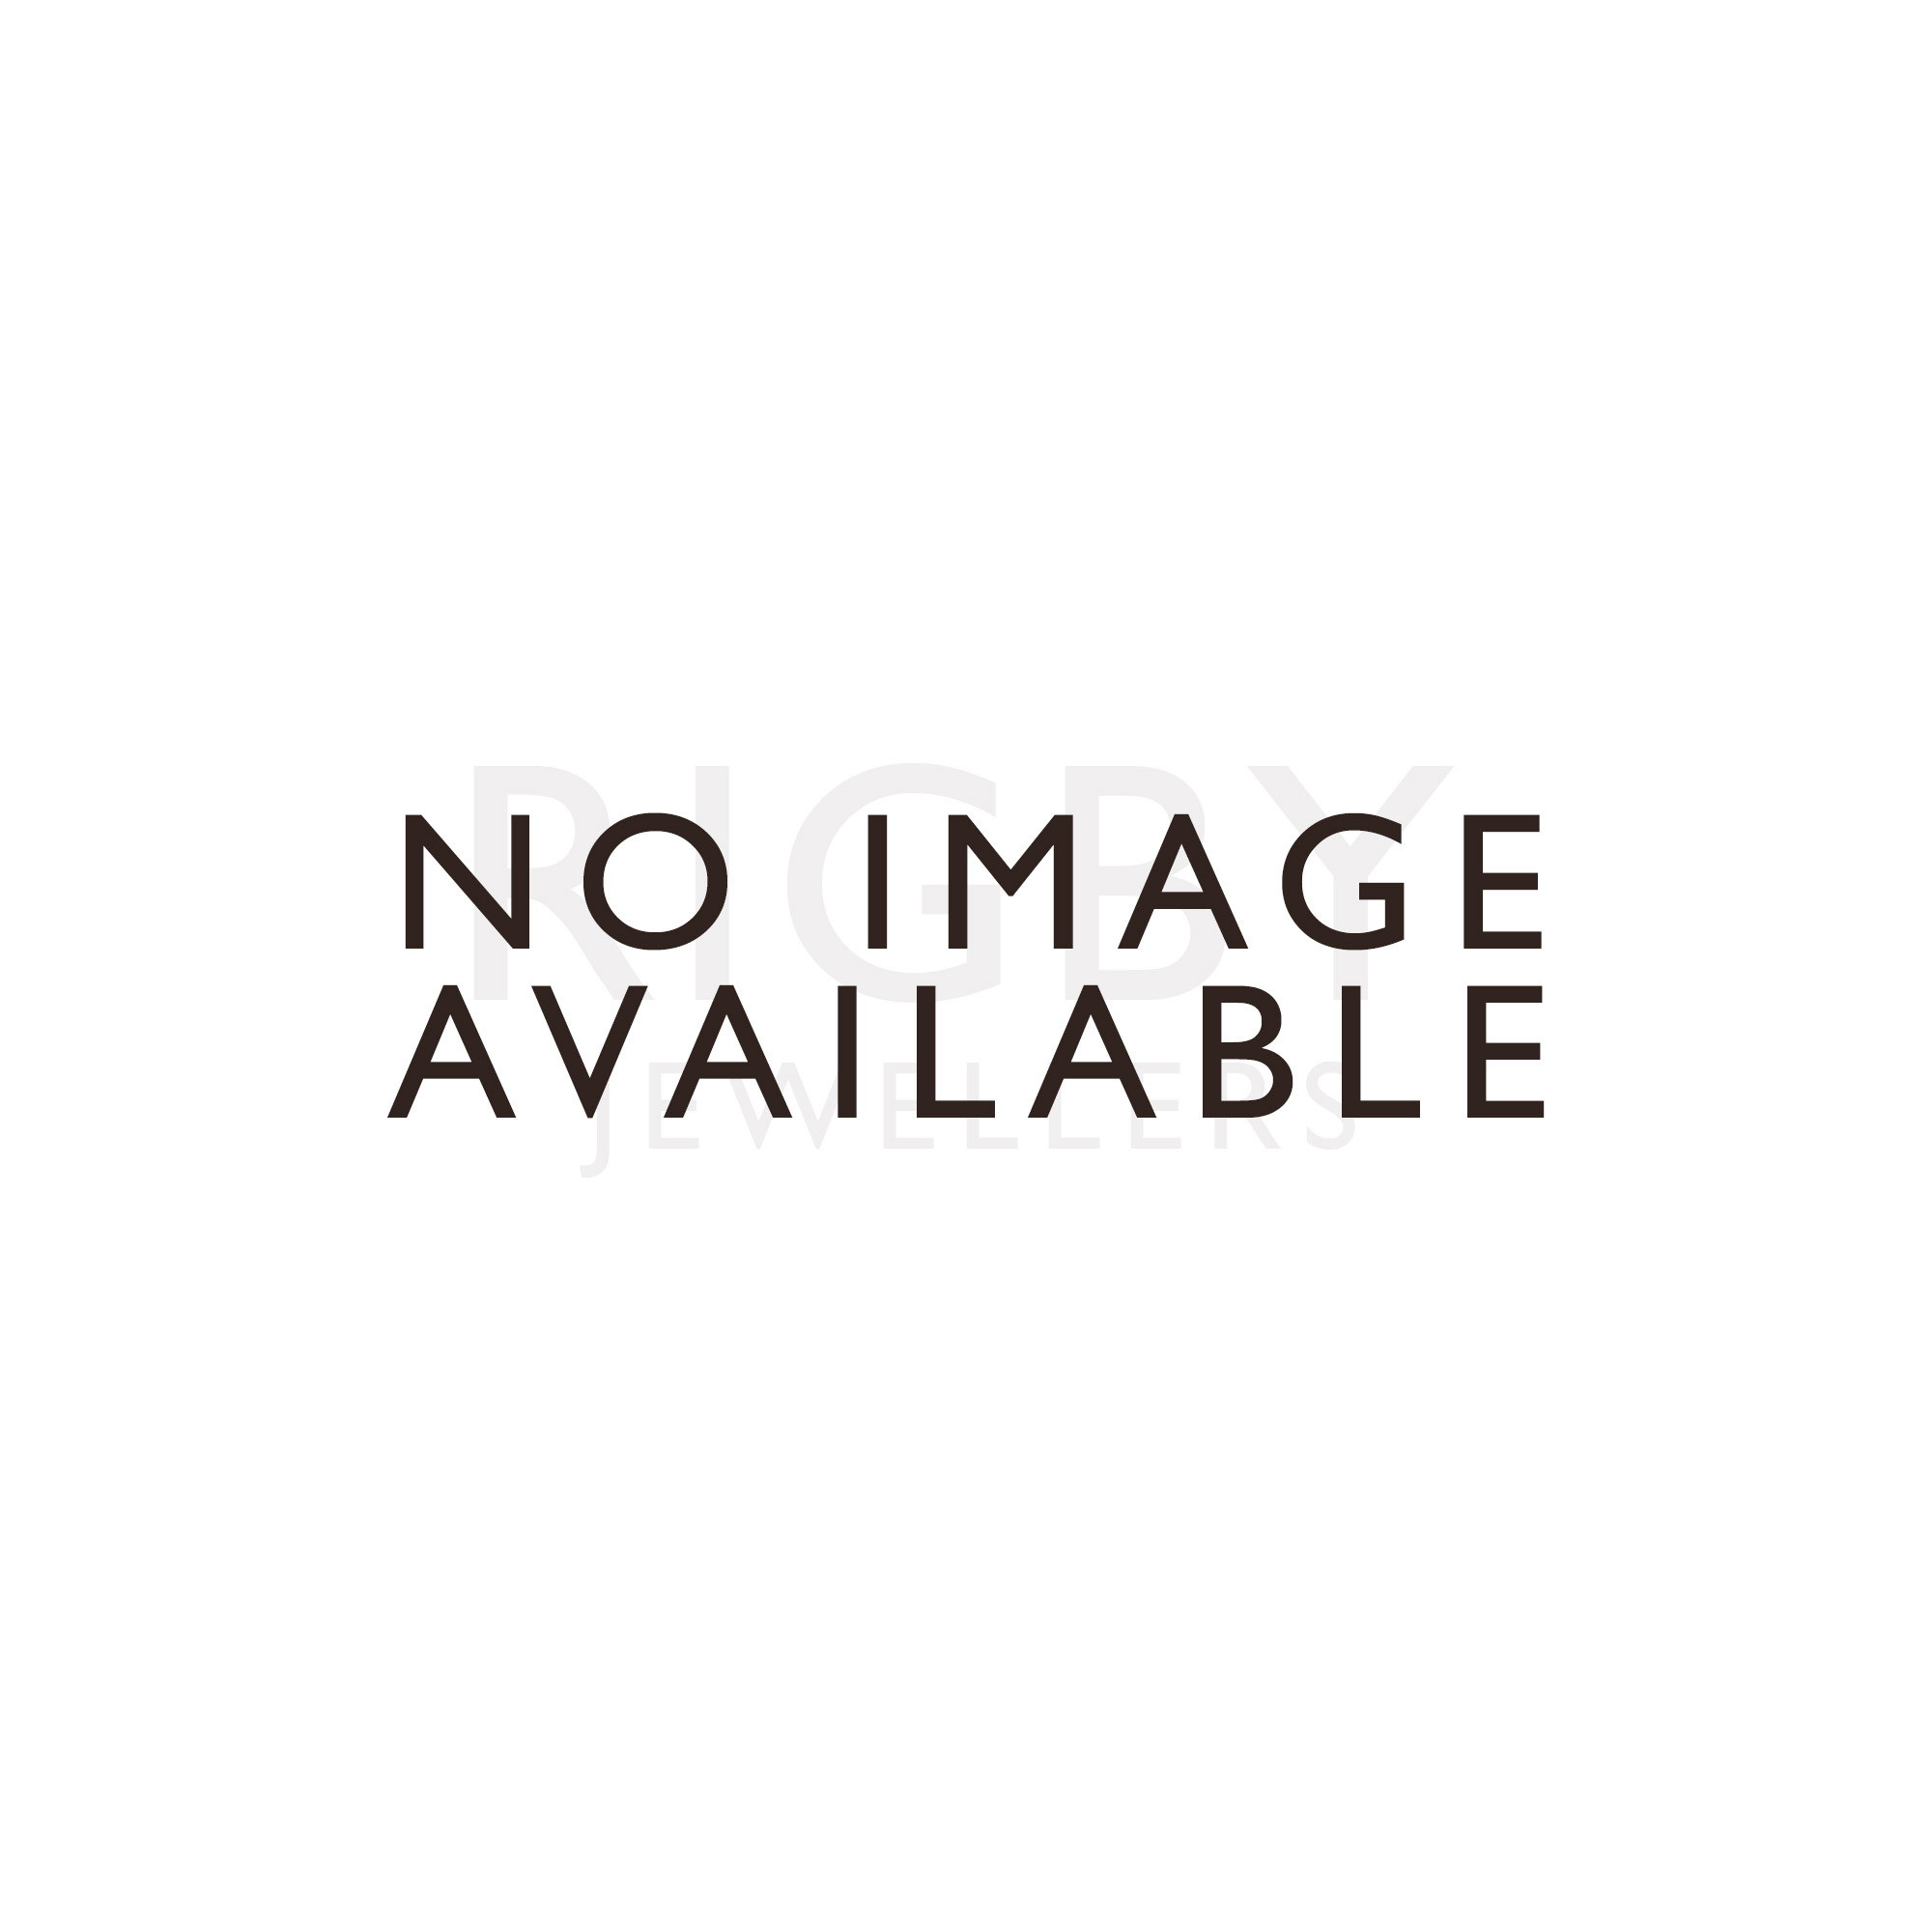 Wooden Westminster Chime Battery Wall Clock With Pendulum Qxh071b